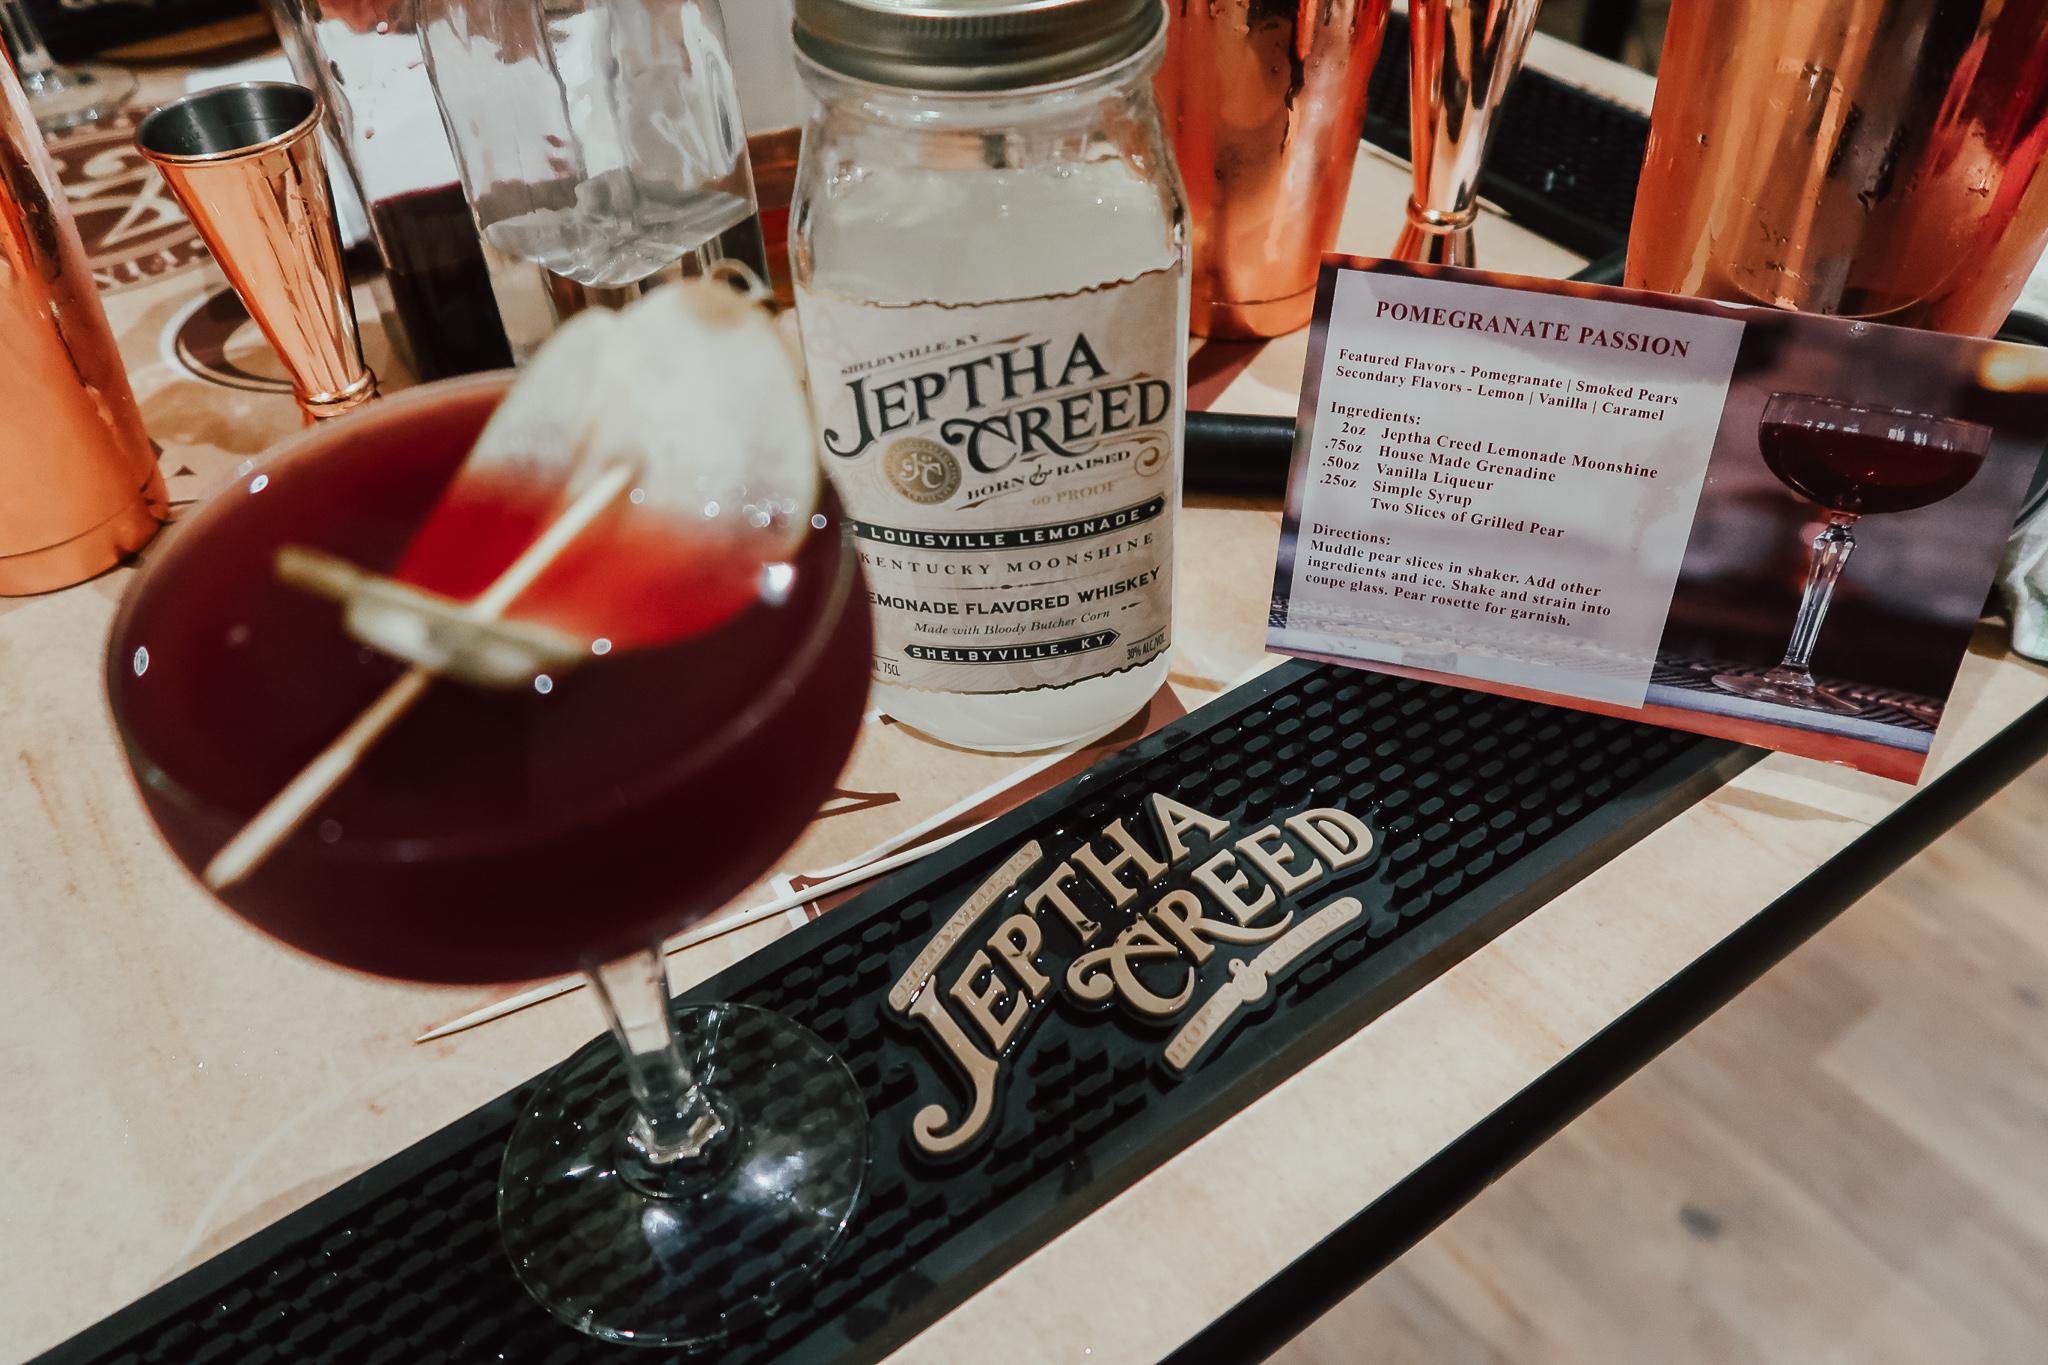 Cocktail-and-Appetizer-Flavor-Pairing-Class-Jeptha-Creed-Kentucky-1.jpg